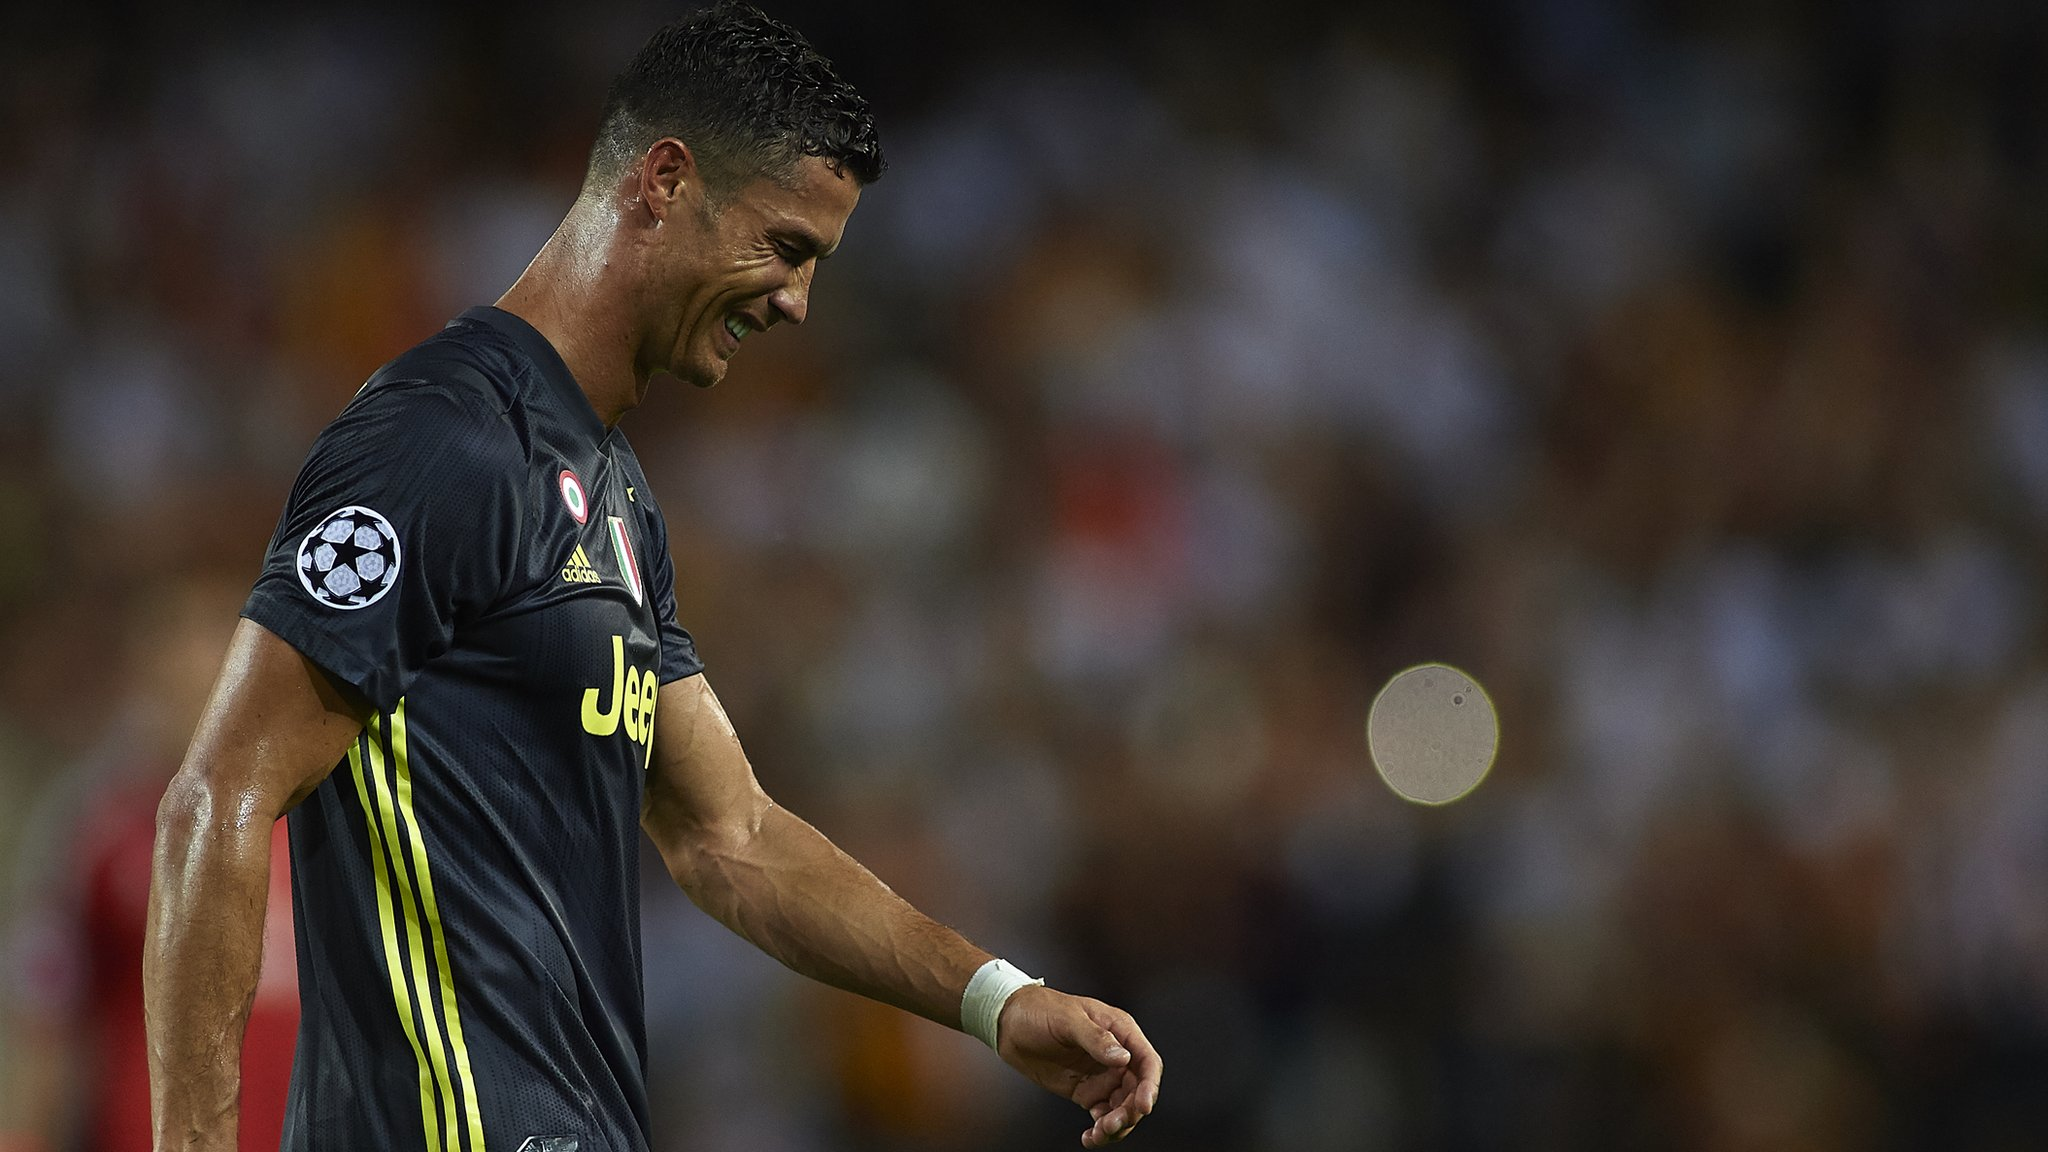 Will Ronaldo miss Man Utd games after red card?